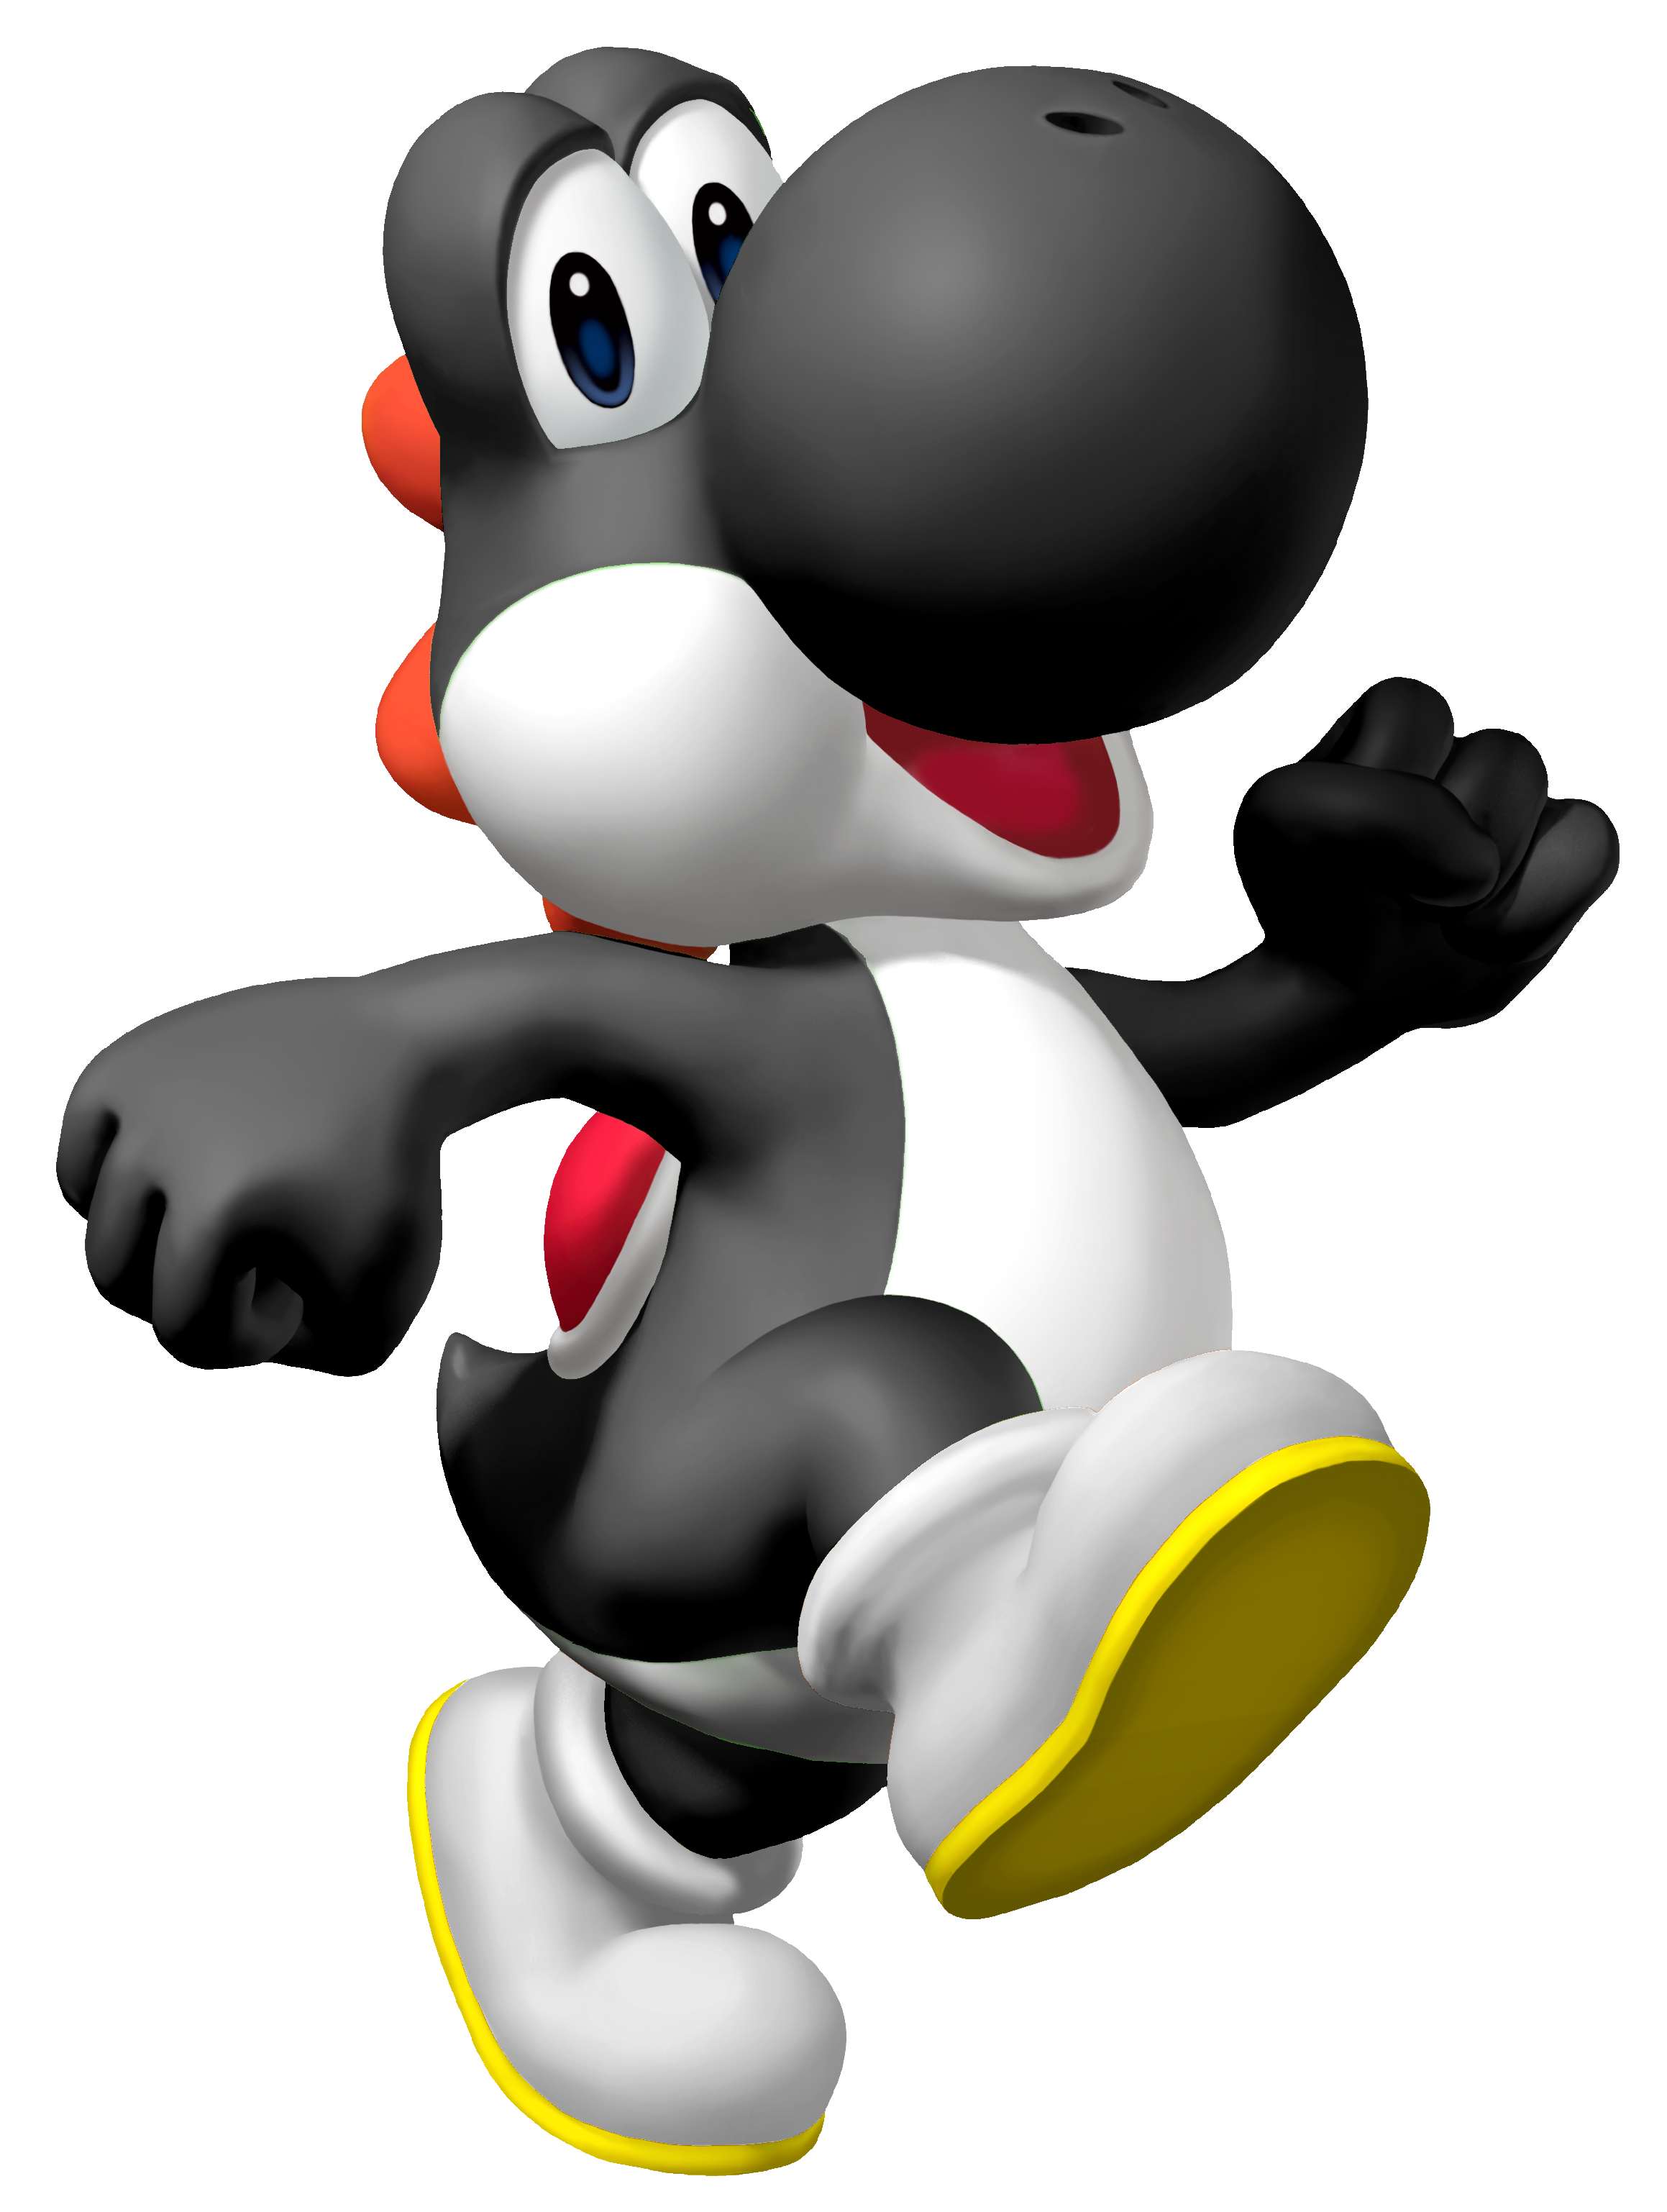 Black Yoshi The last Yoshi, this one will not disappoint! Black Yoshi